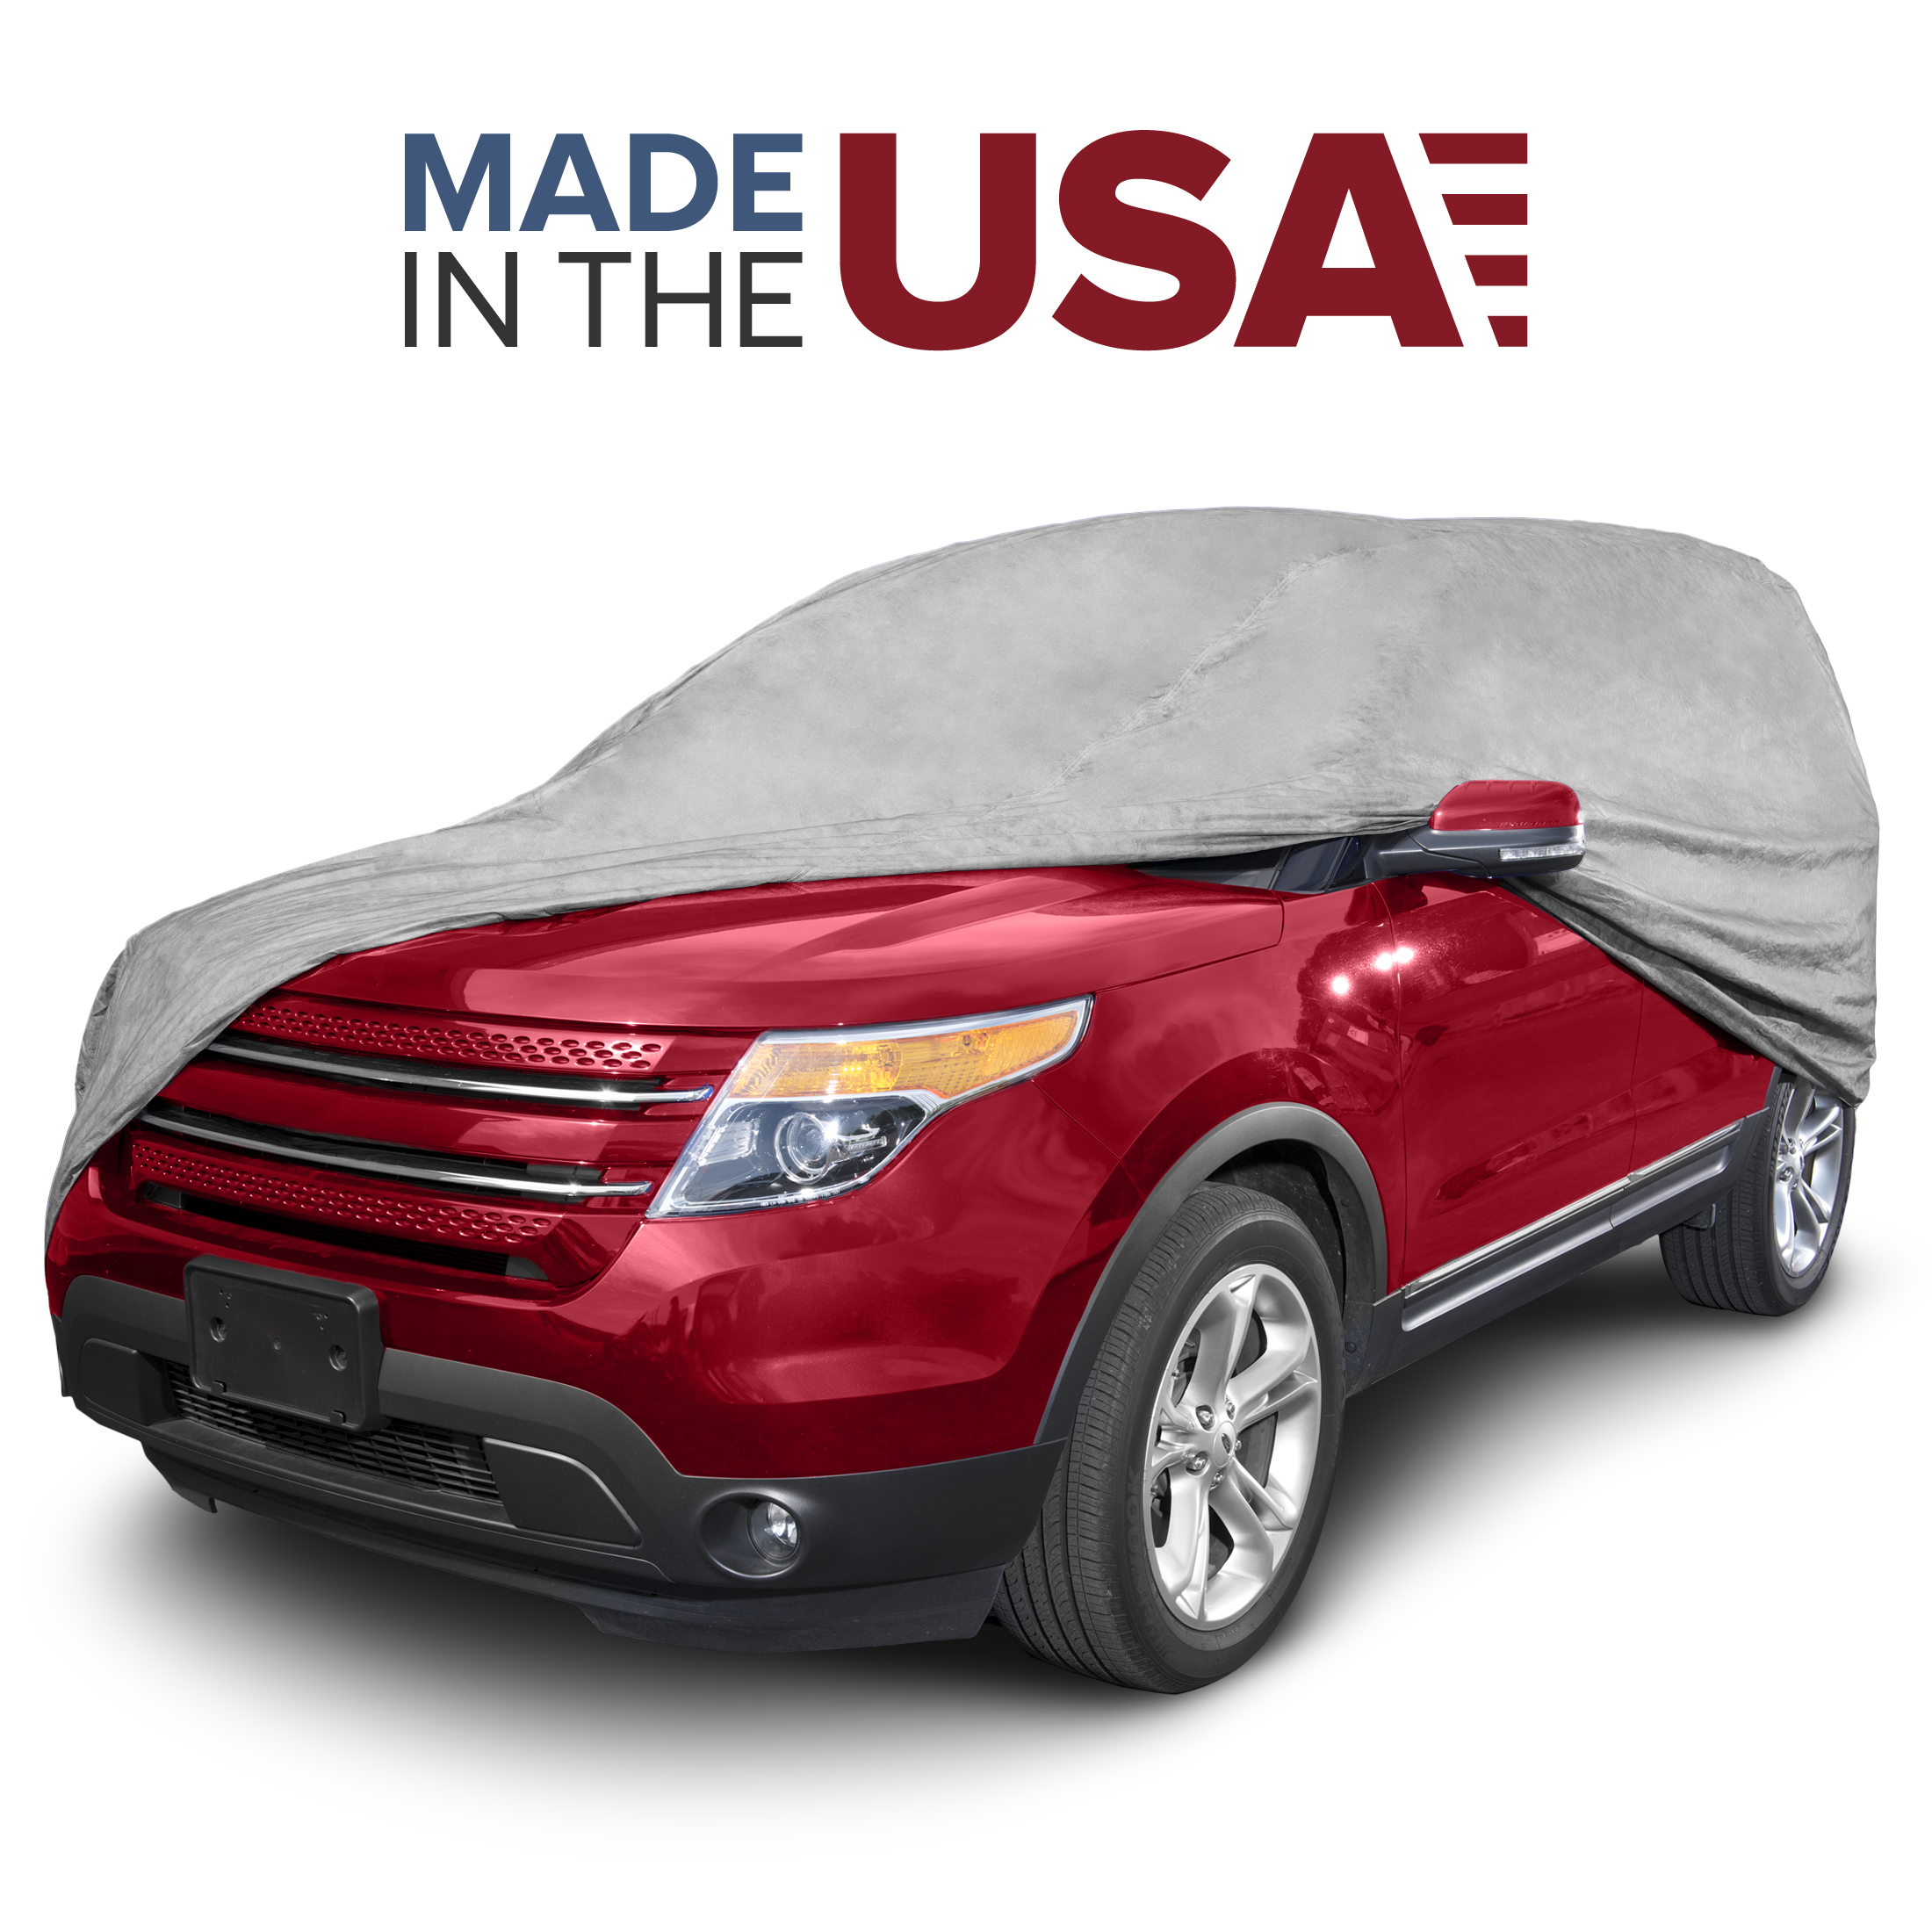 Budge Max SUV Car Cover, Maximum Outdoor Vehicle Protection, Semi-Custom Fit